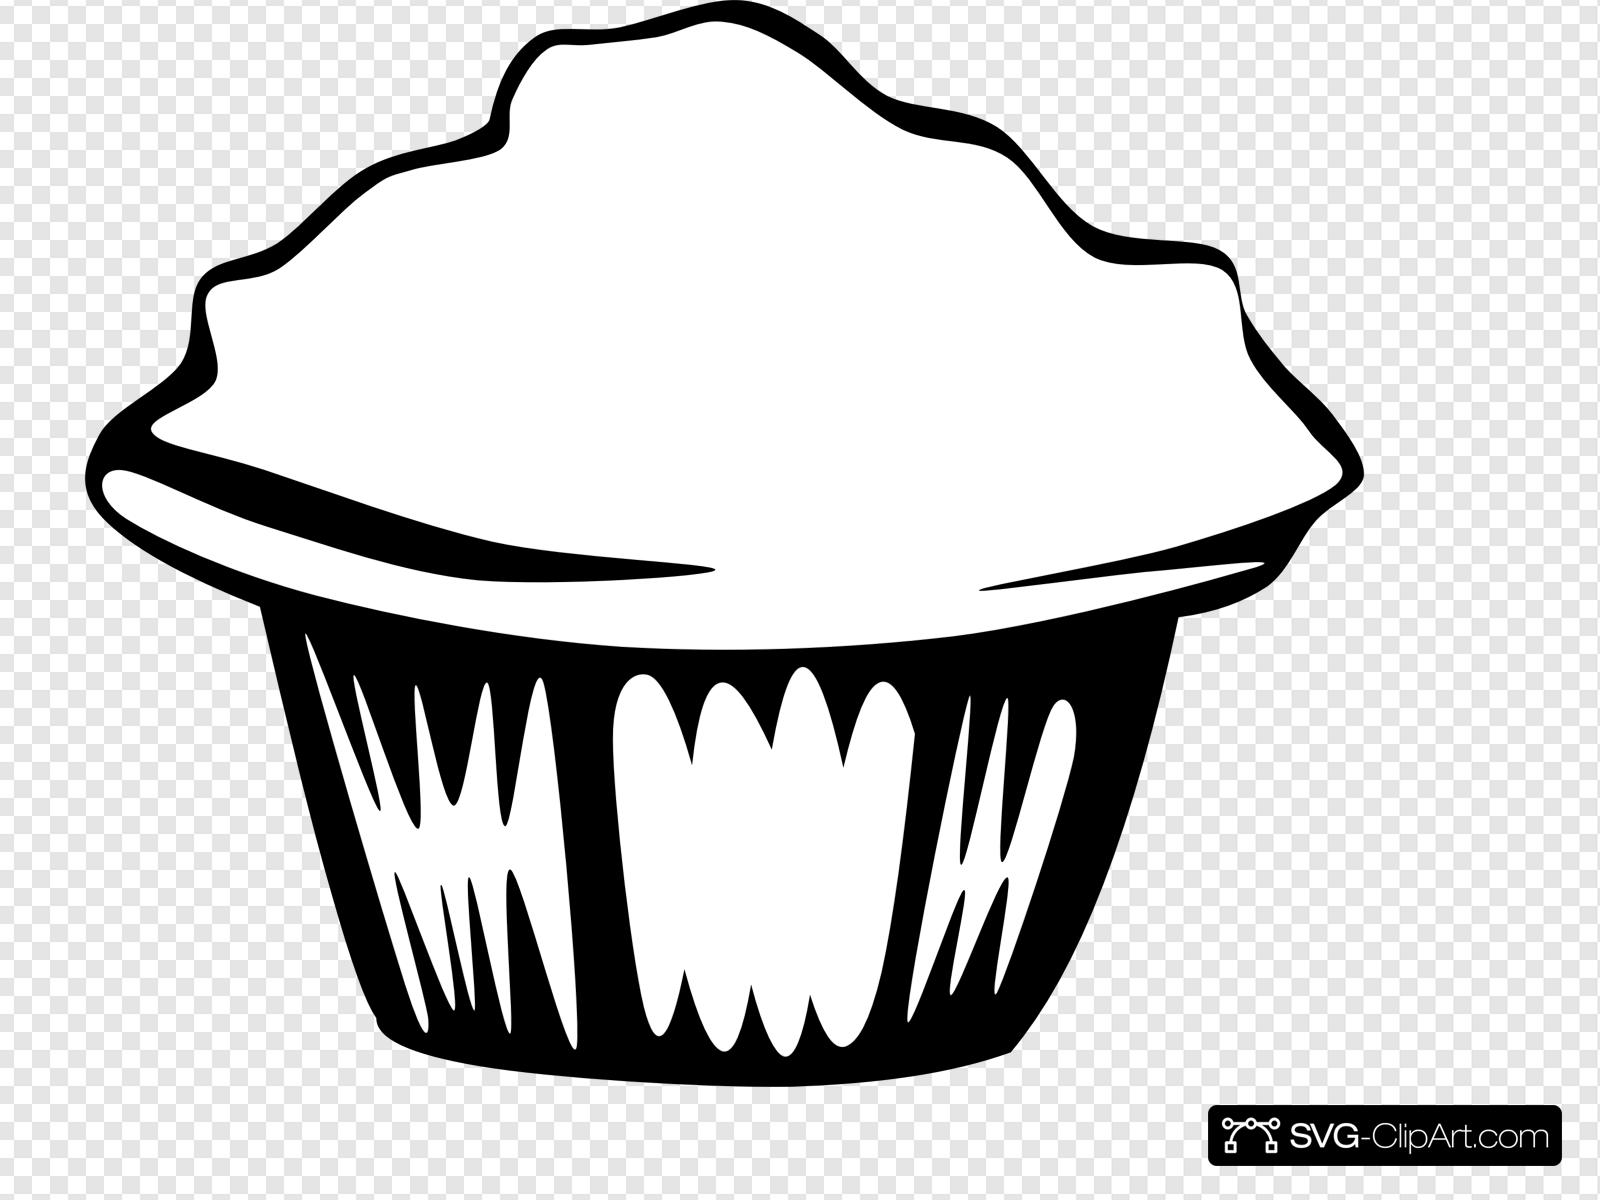 Muffin Black White Clip art, Icon and SVG.